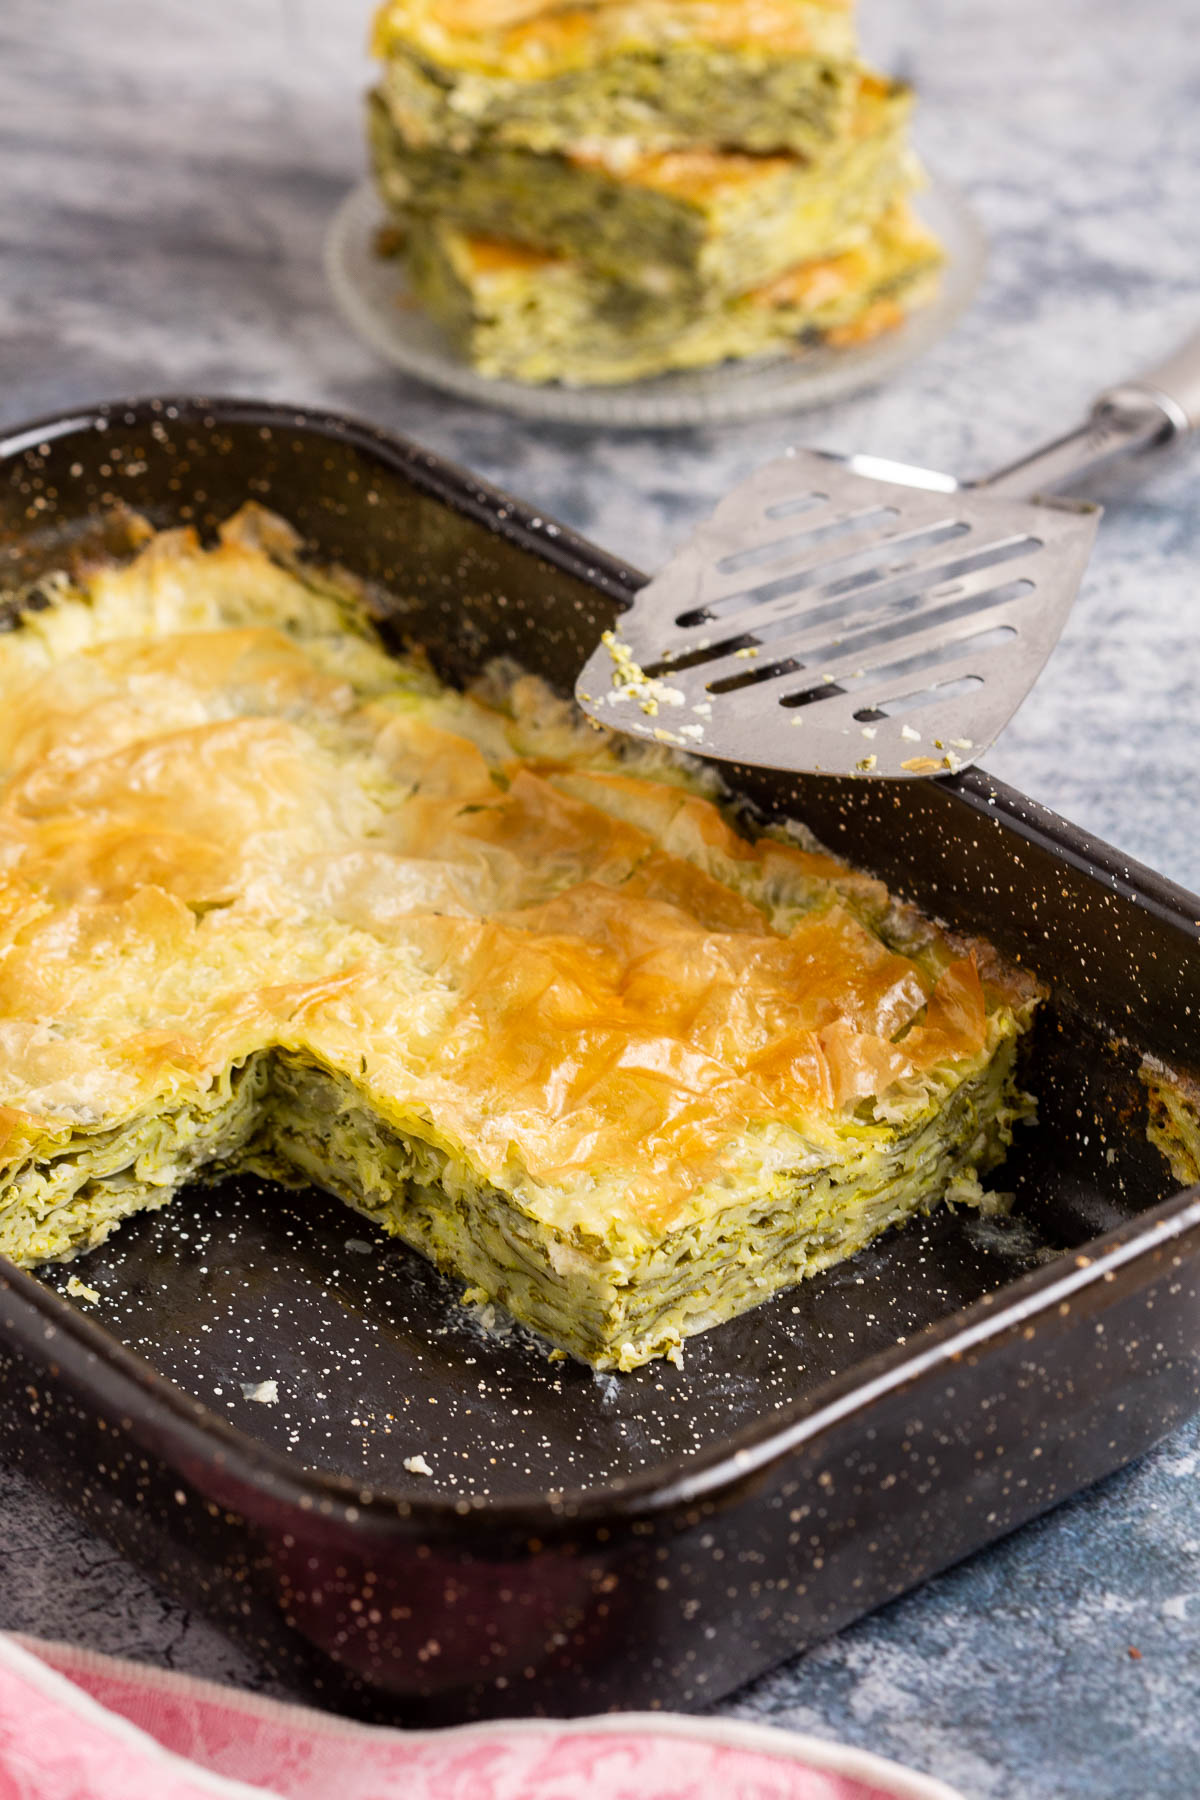 Cheese pie with spinach in a pan.